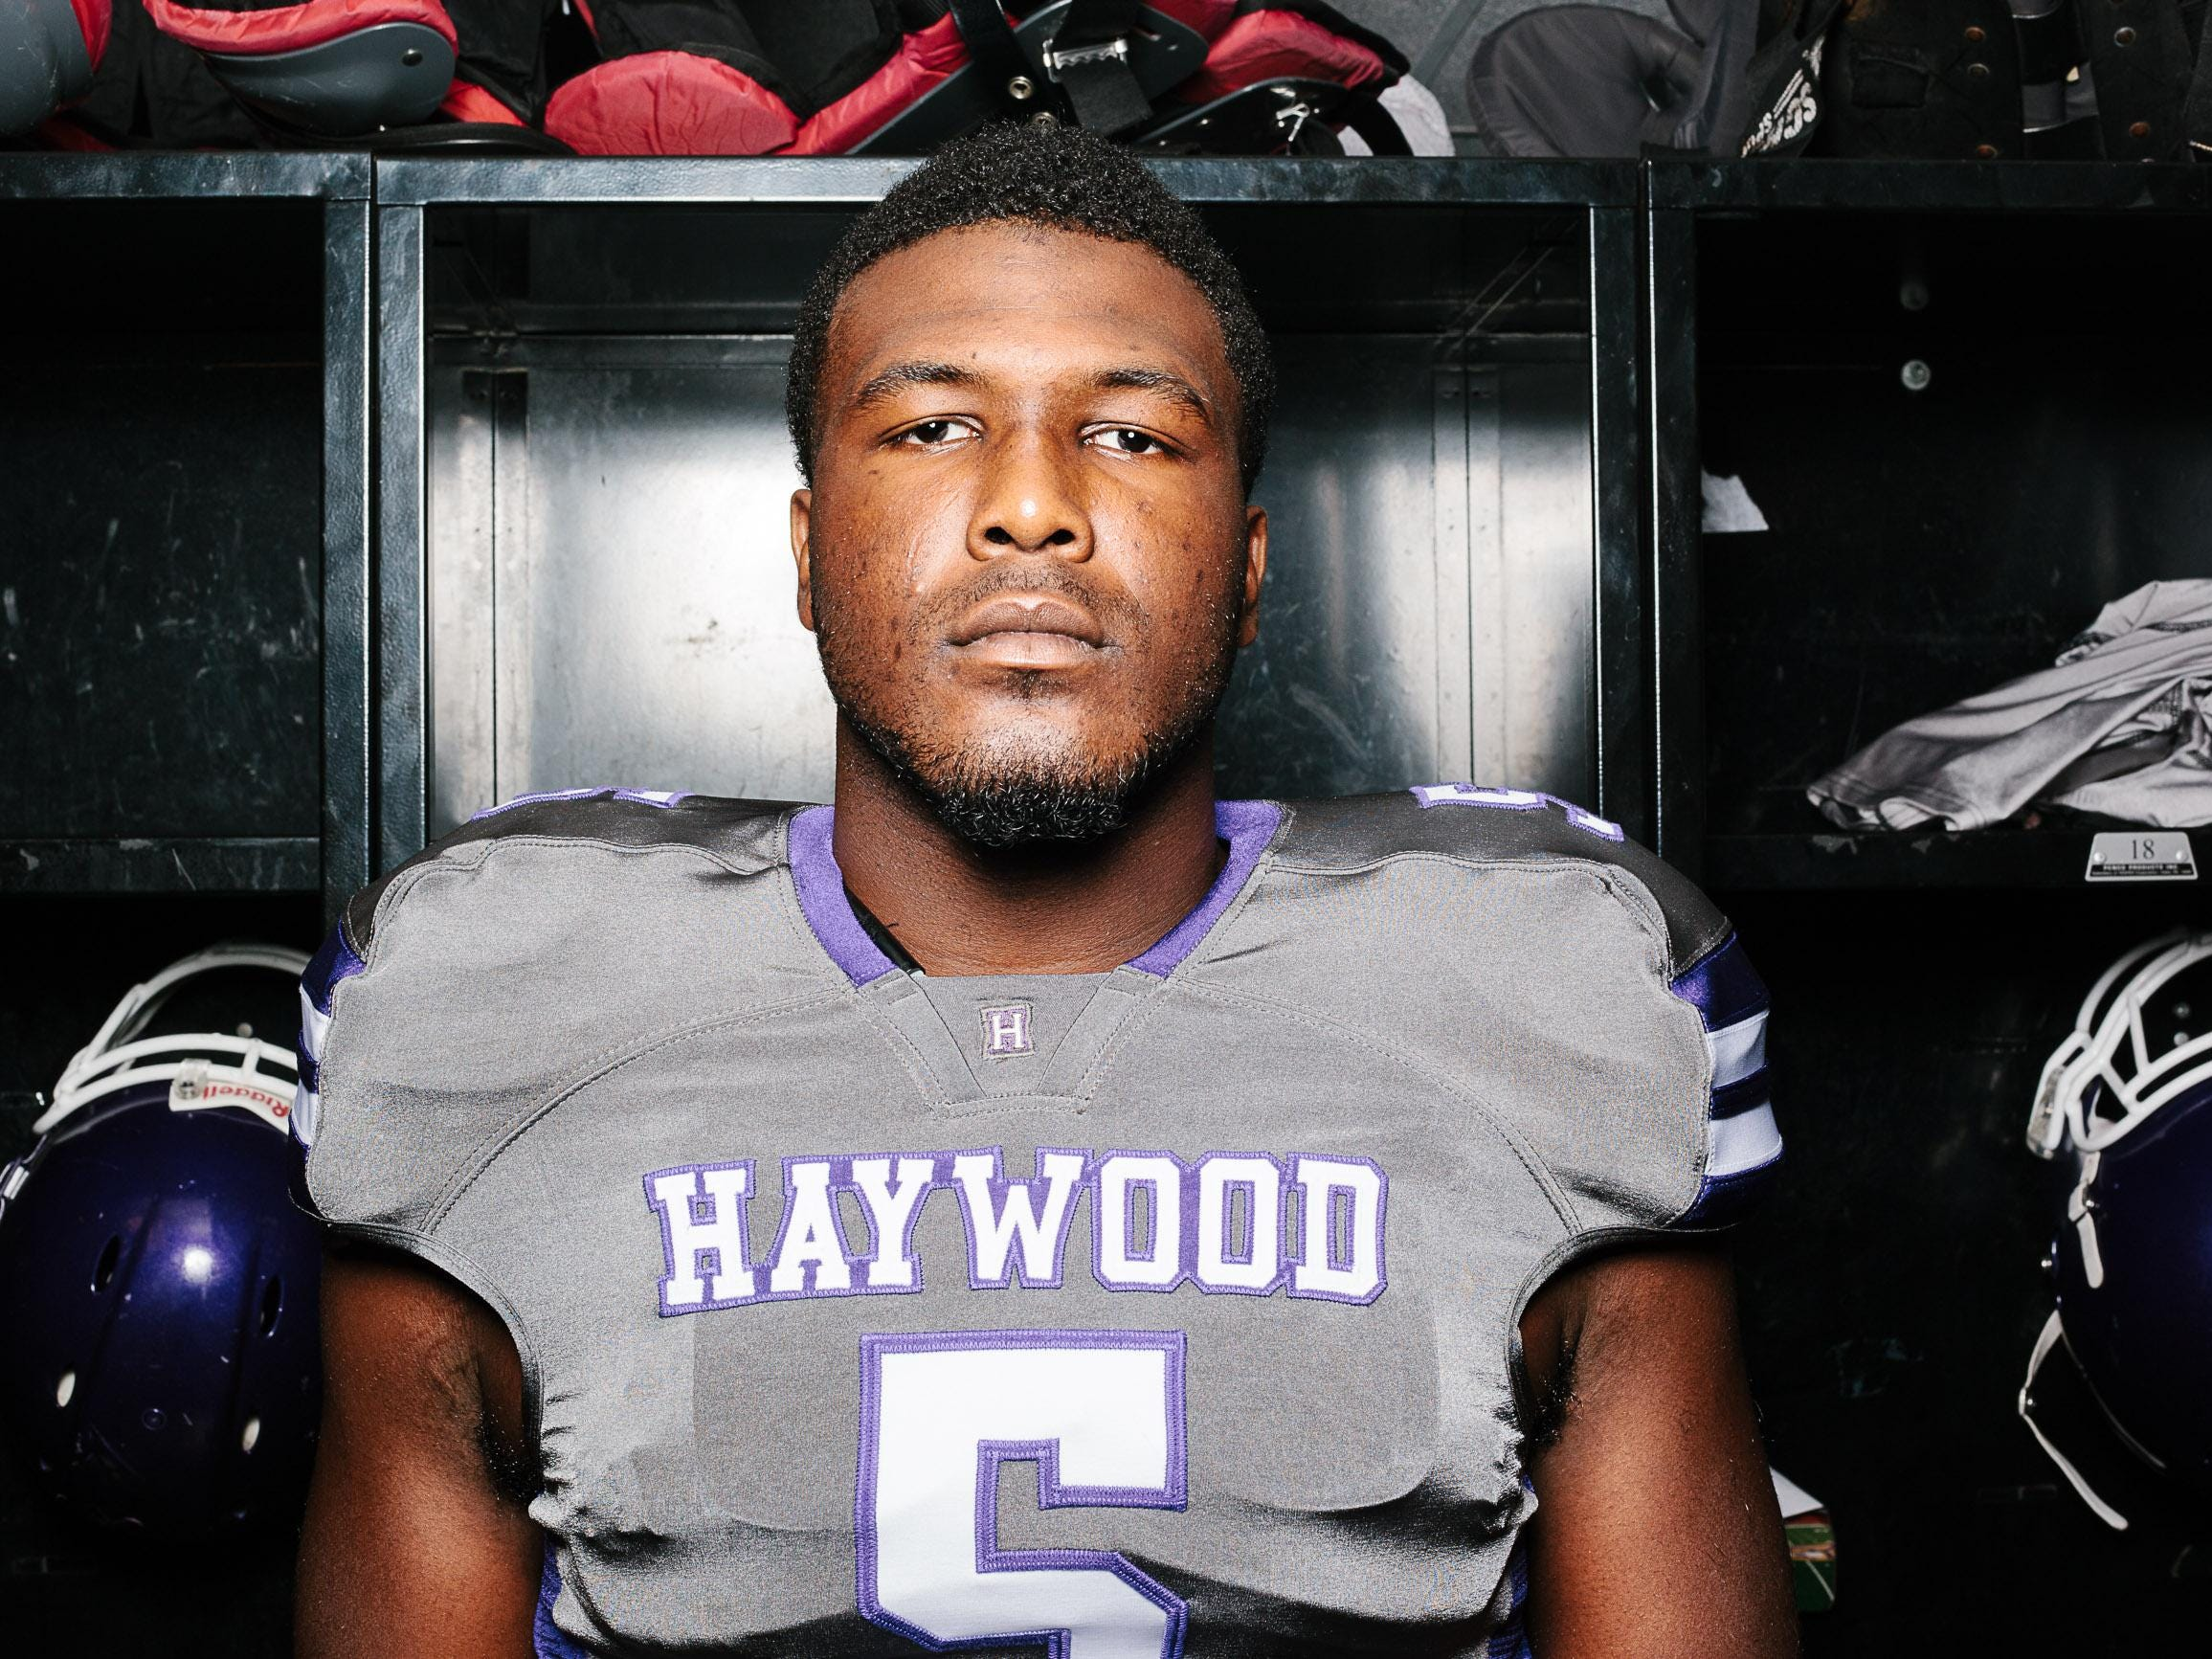 Haywood senior Emmit Gooden has offers from more than 30 NCAA FBS schools.